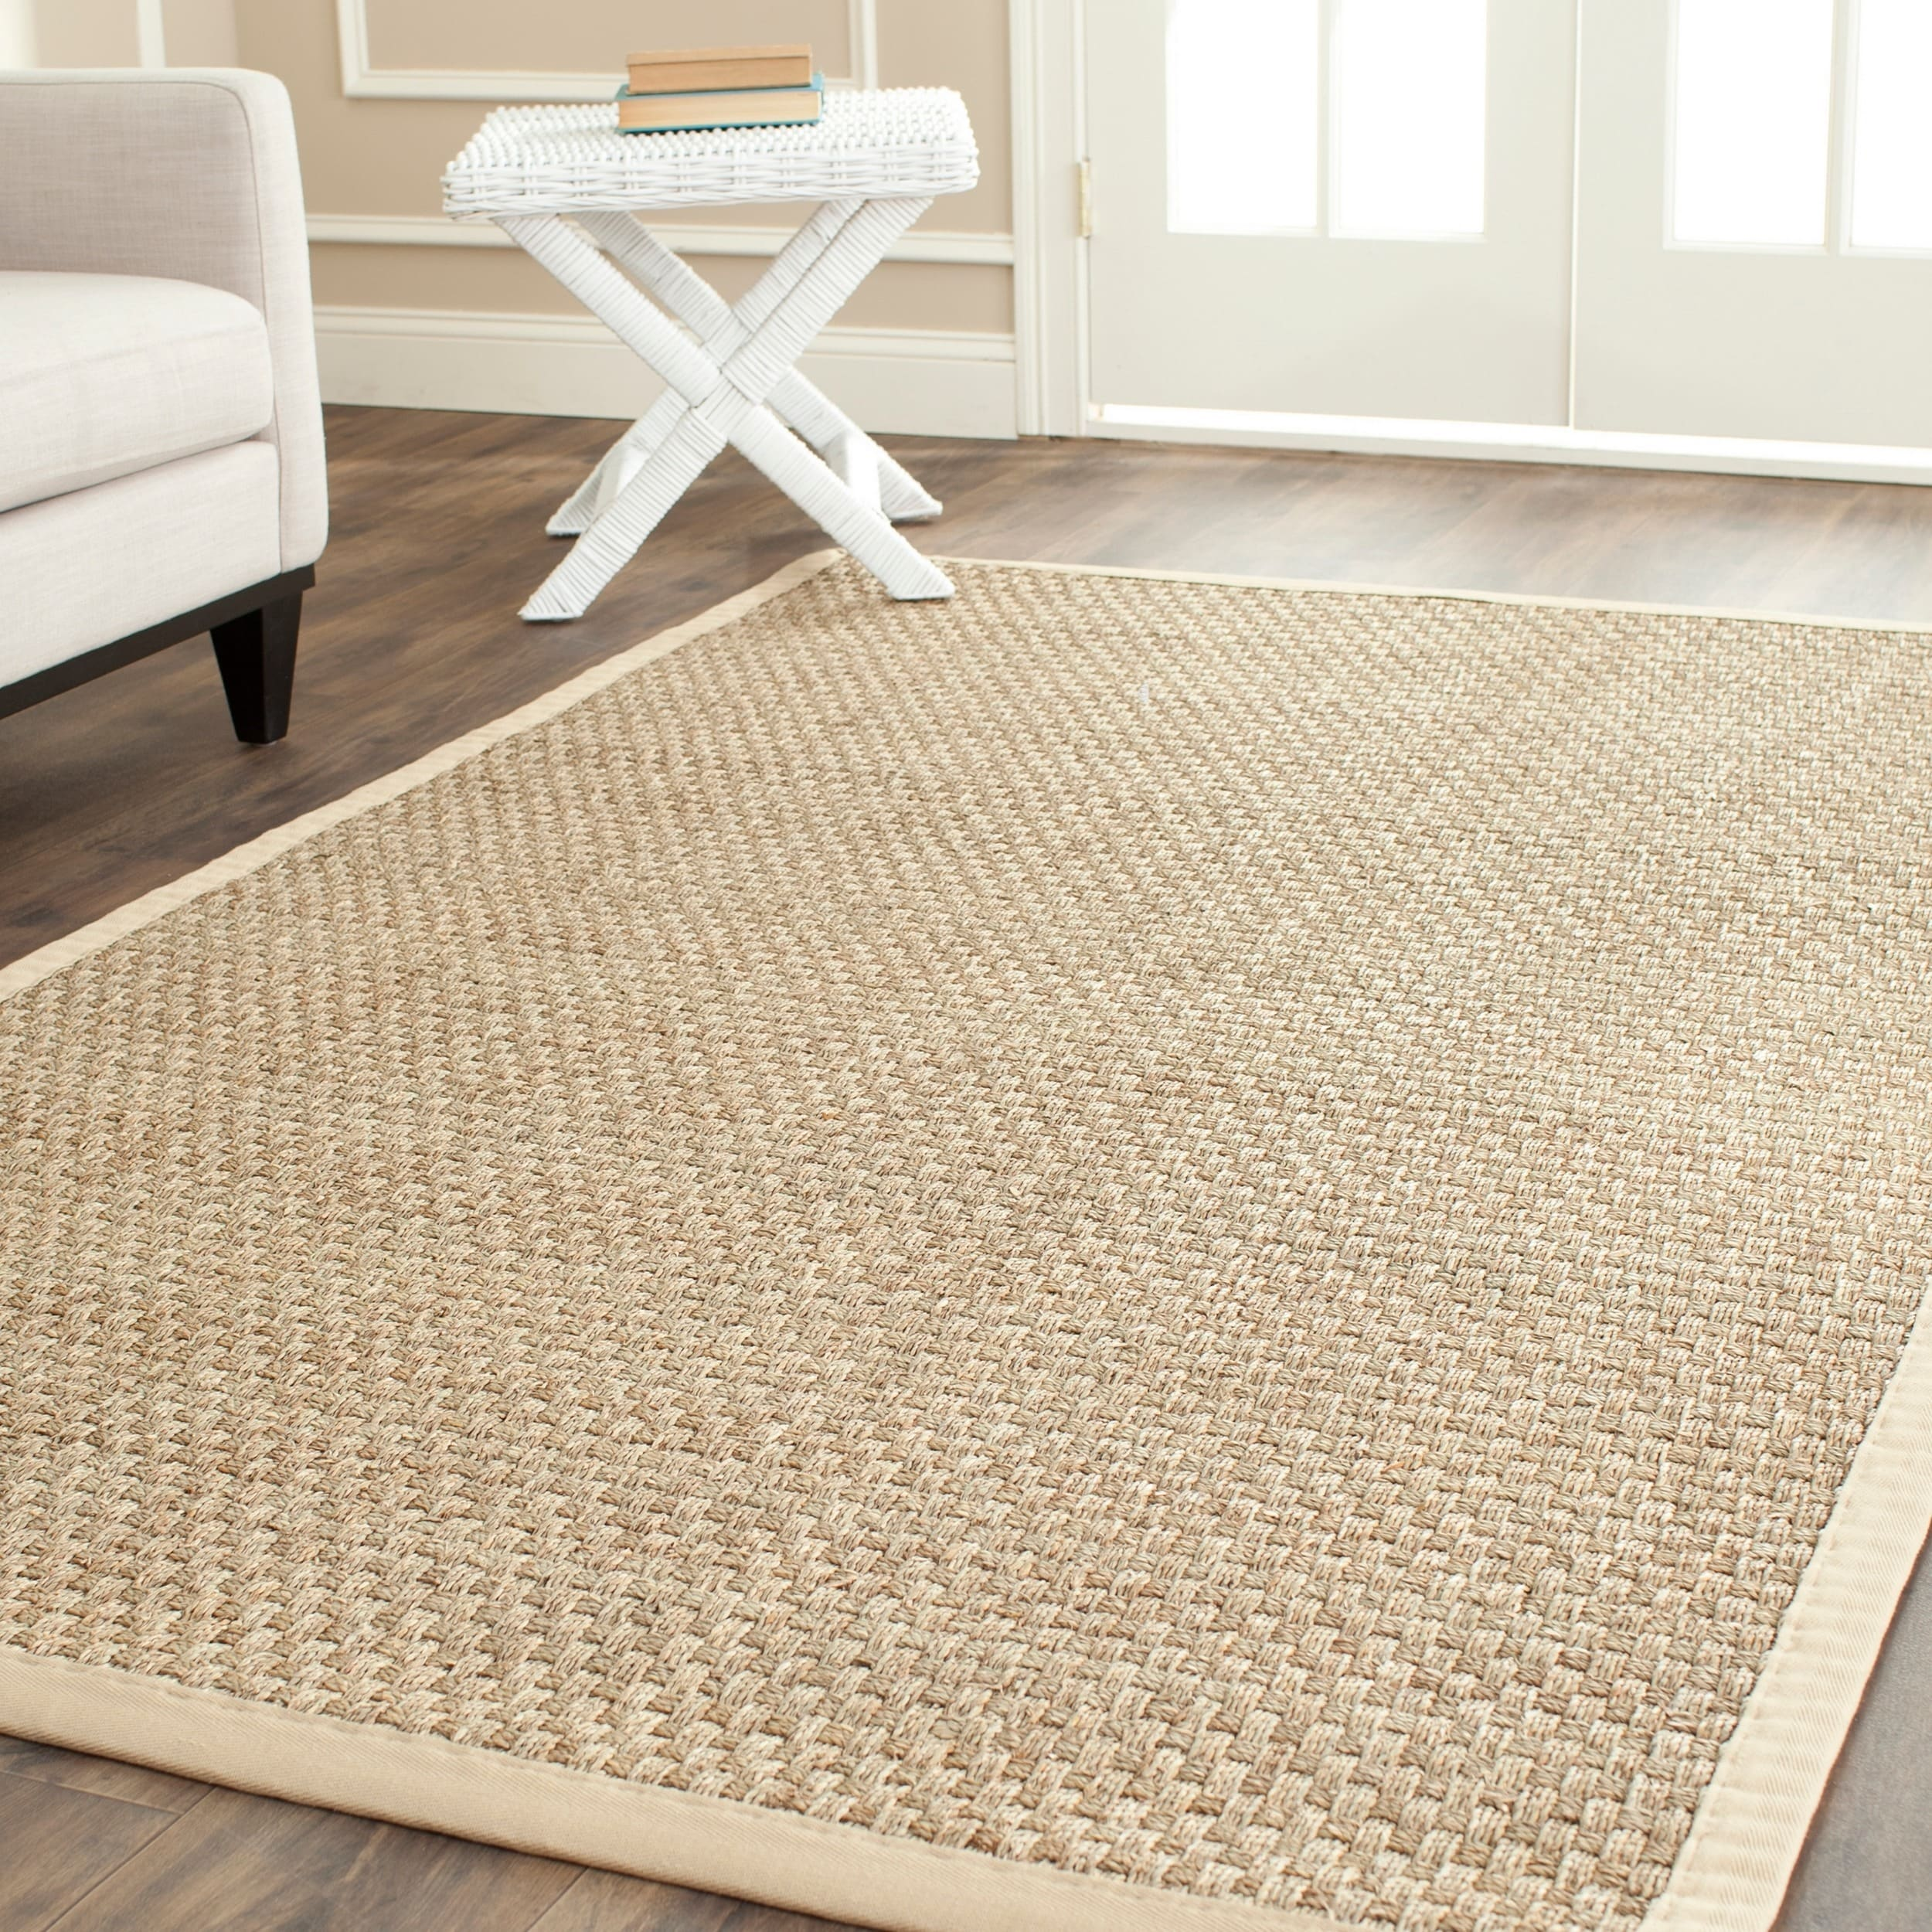 Shop Safavieh Casual Natural Fiber Natural And Beige Border Seagrass